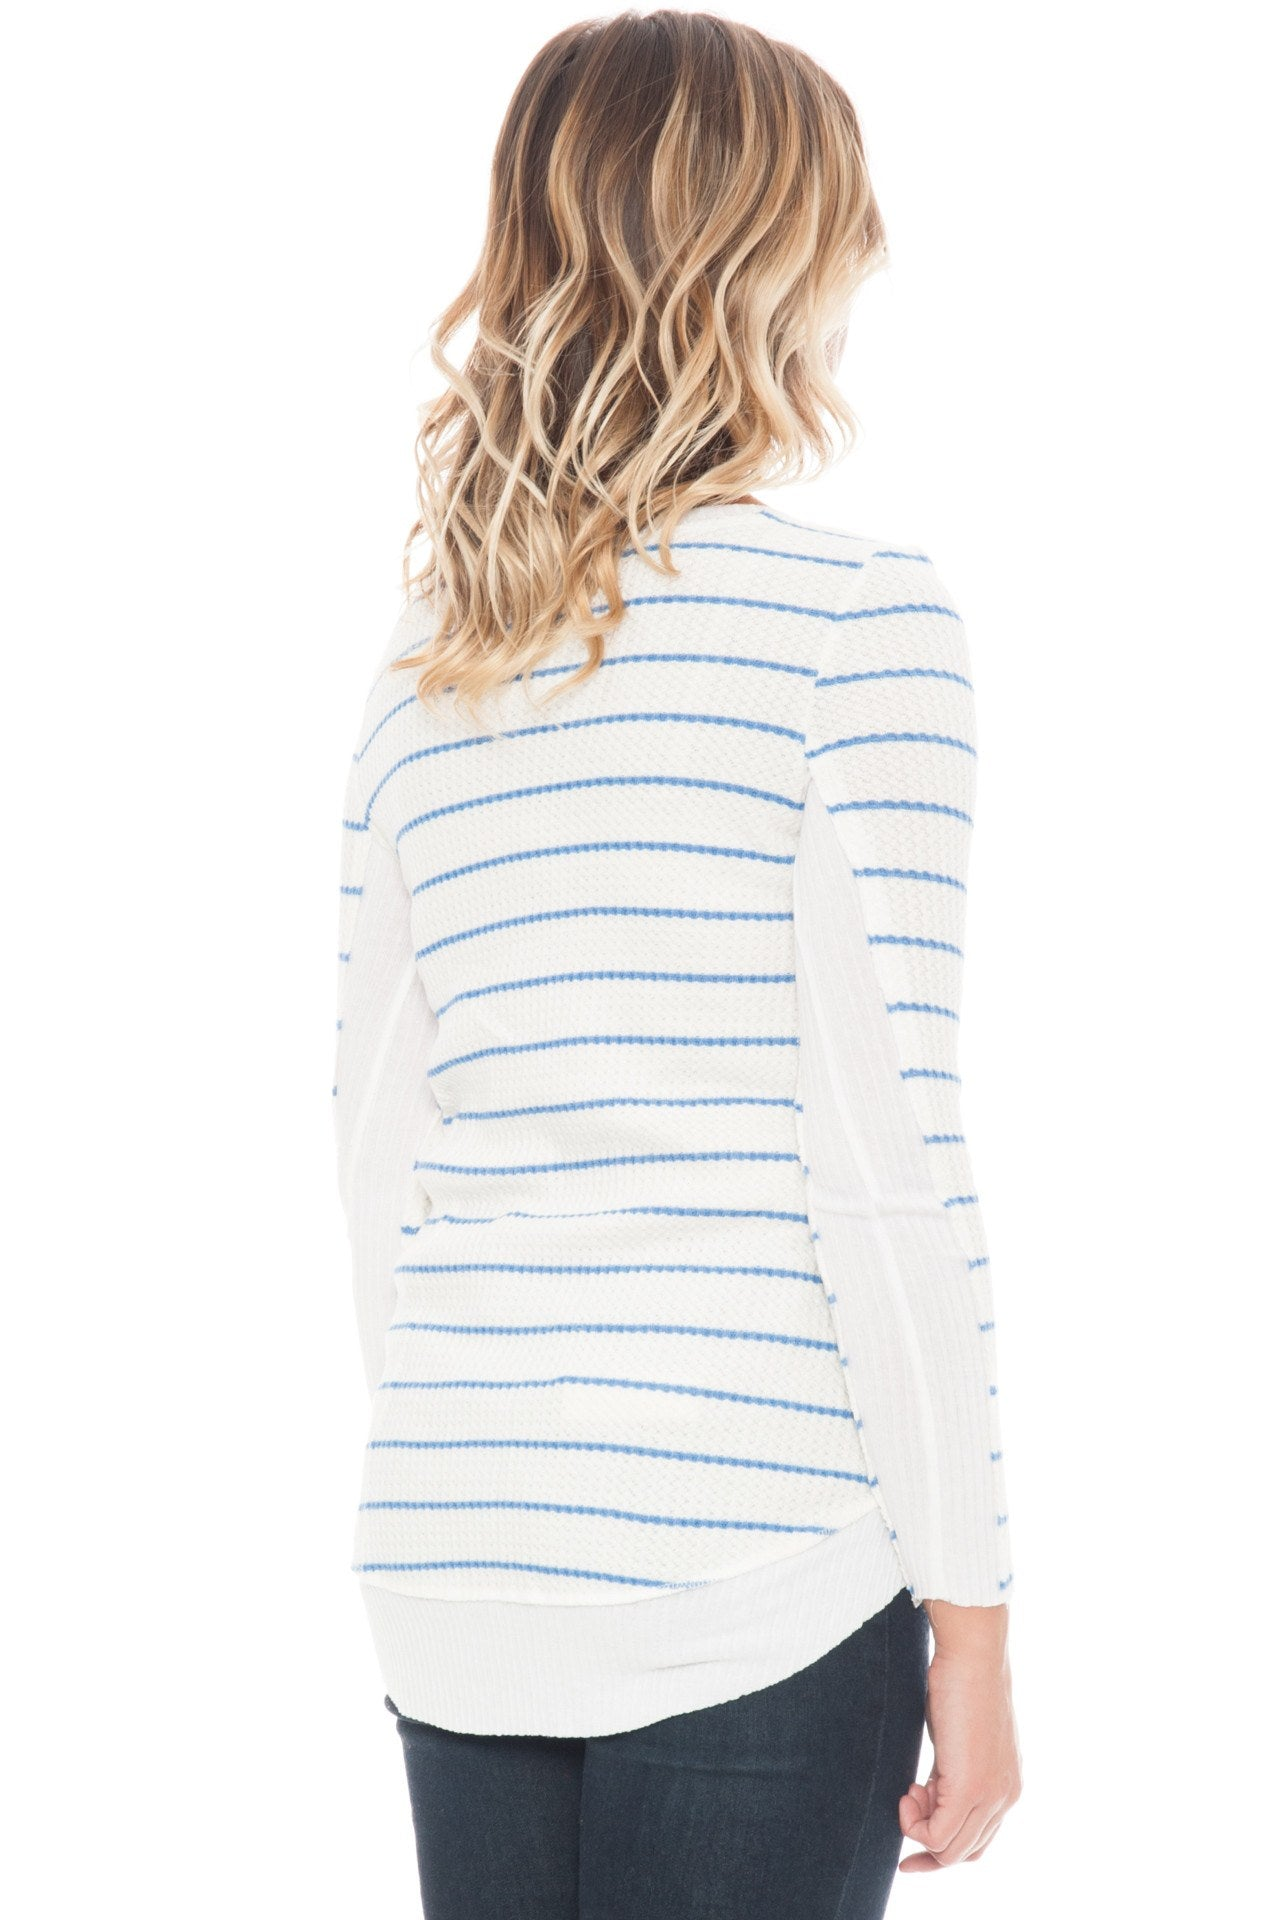 Shirt - Waffle Stripes By Paper Crane